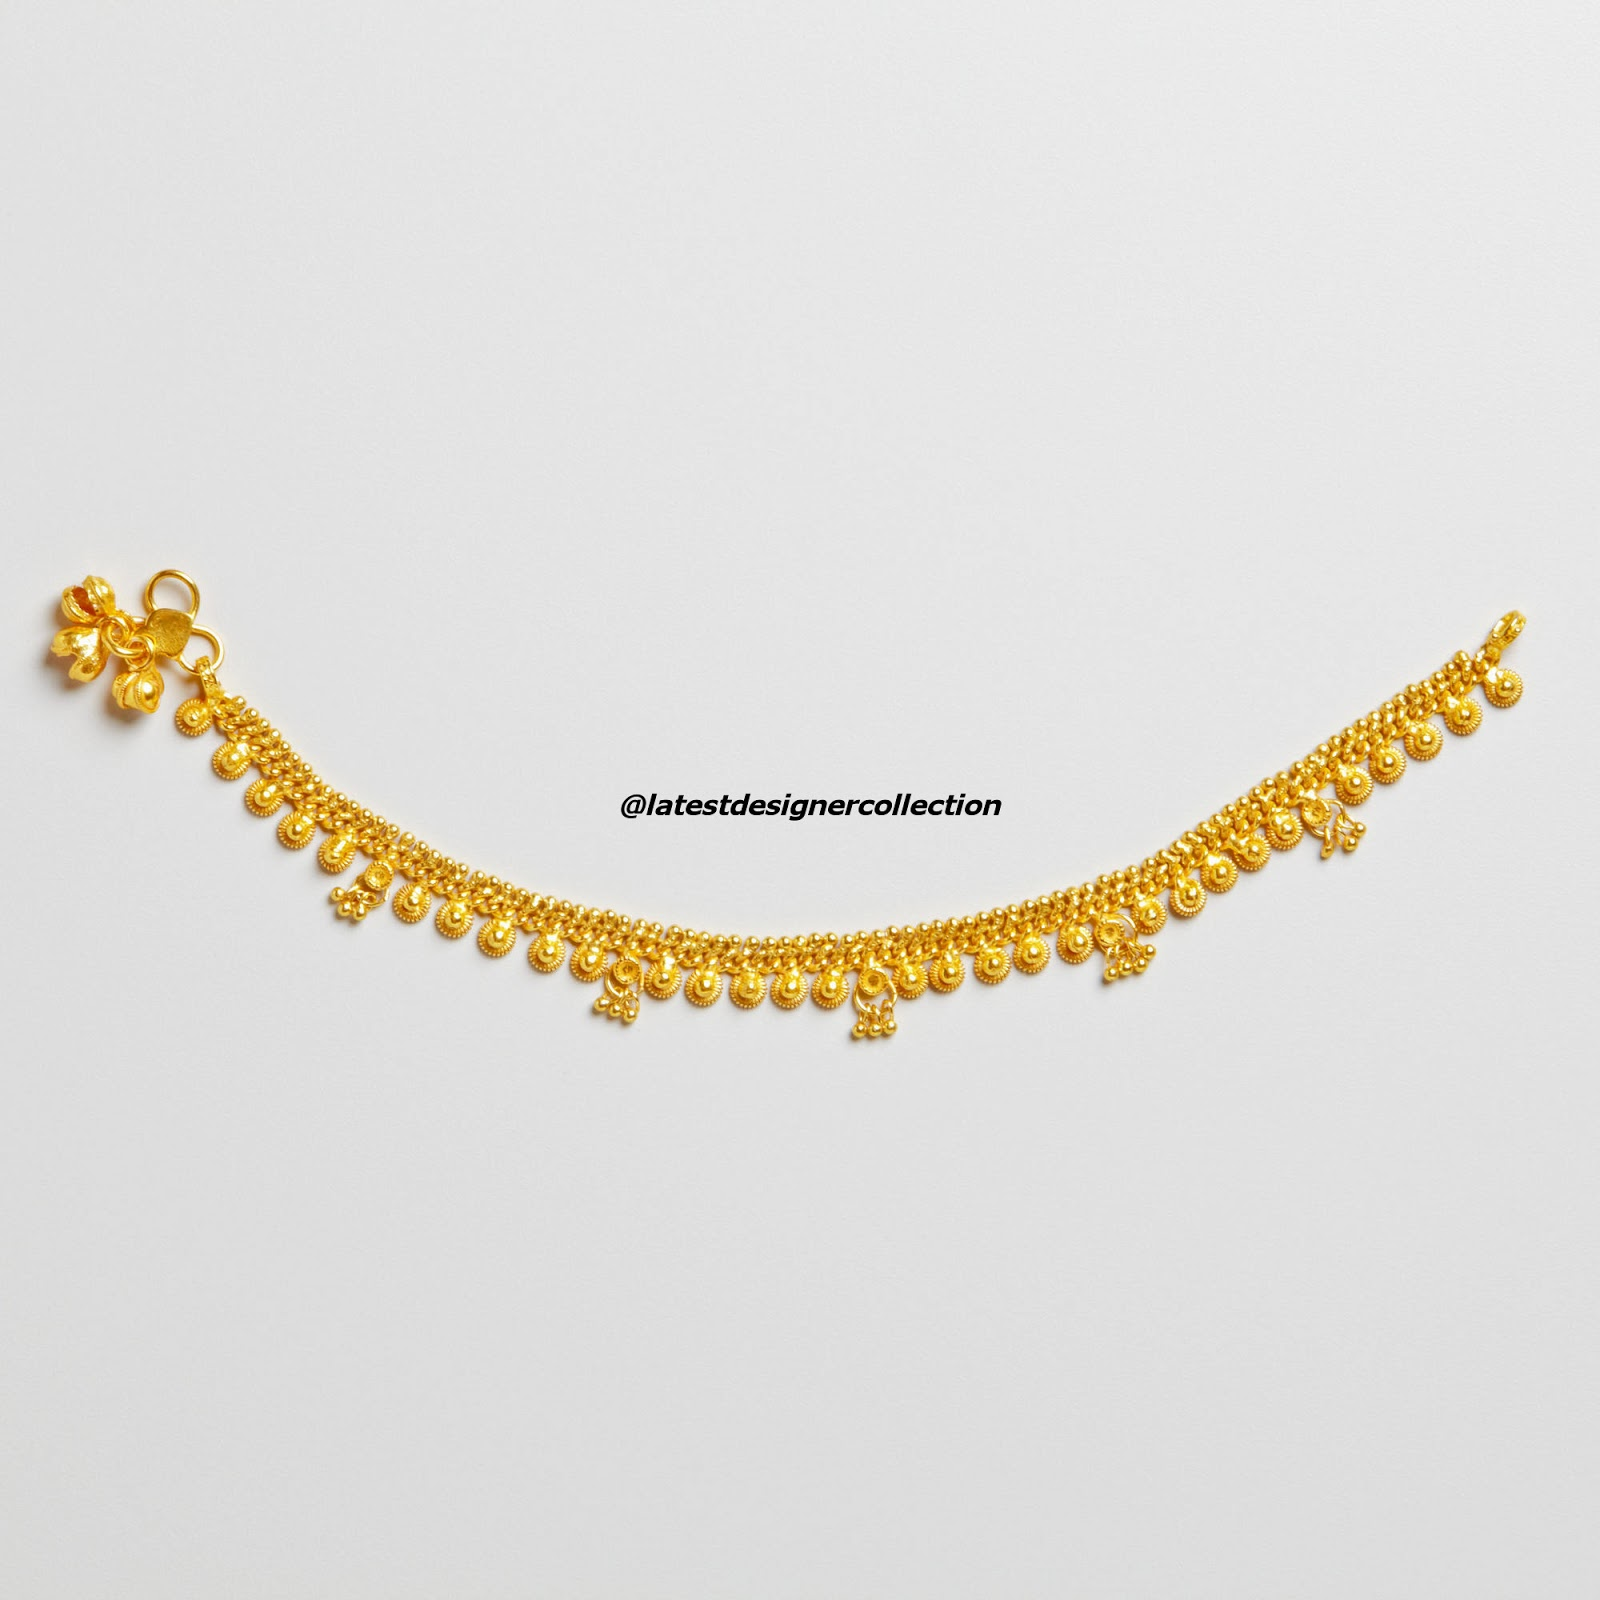 anklet designers chandni beautiful designer designs payal buy pearls original adiva glowing online